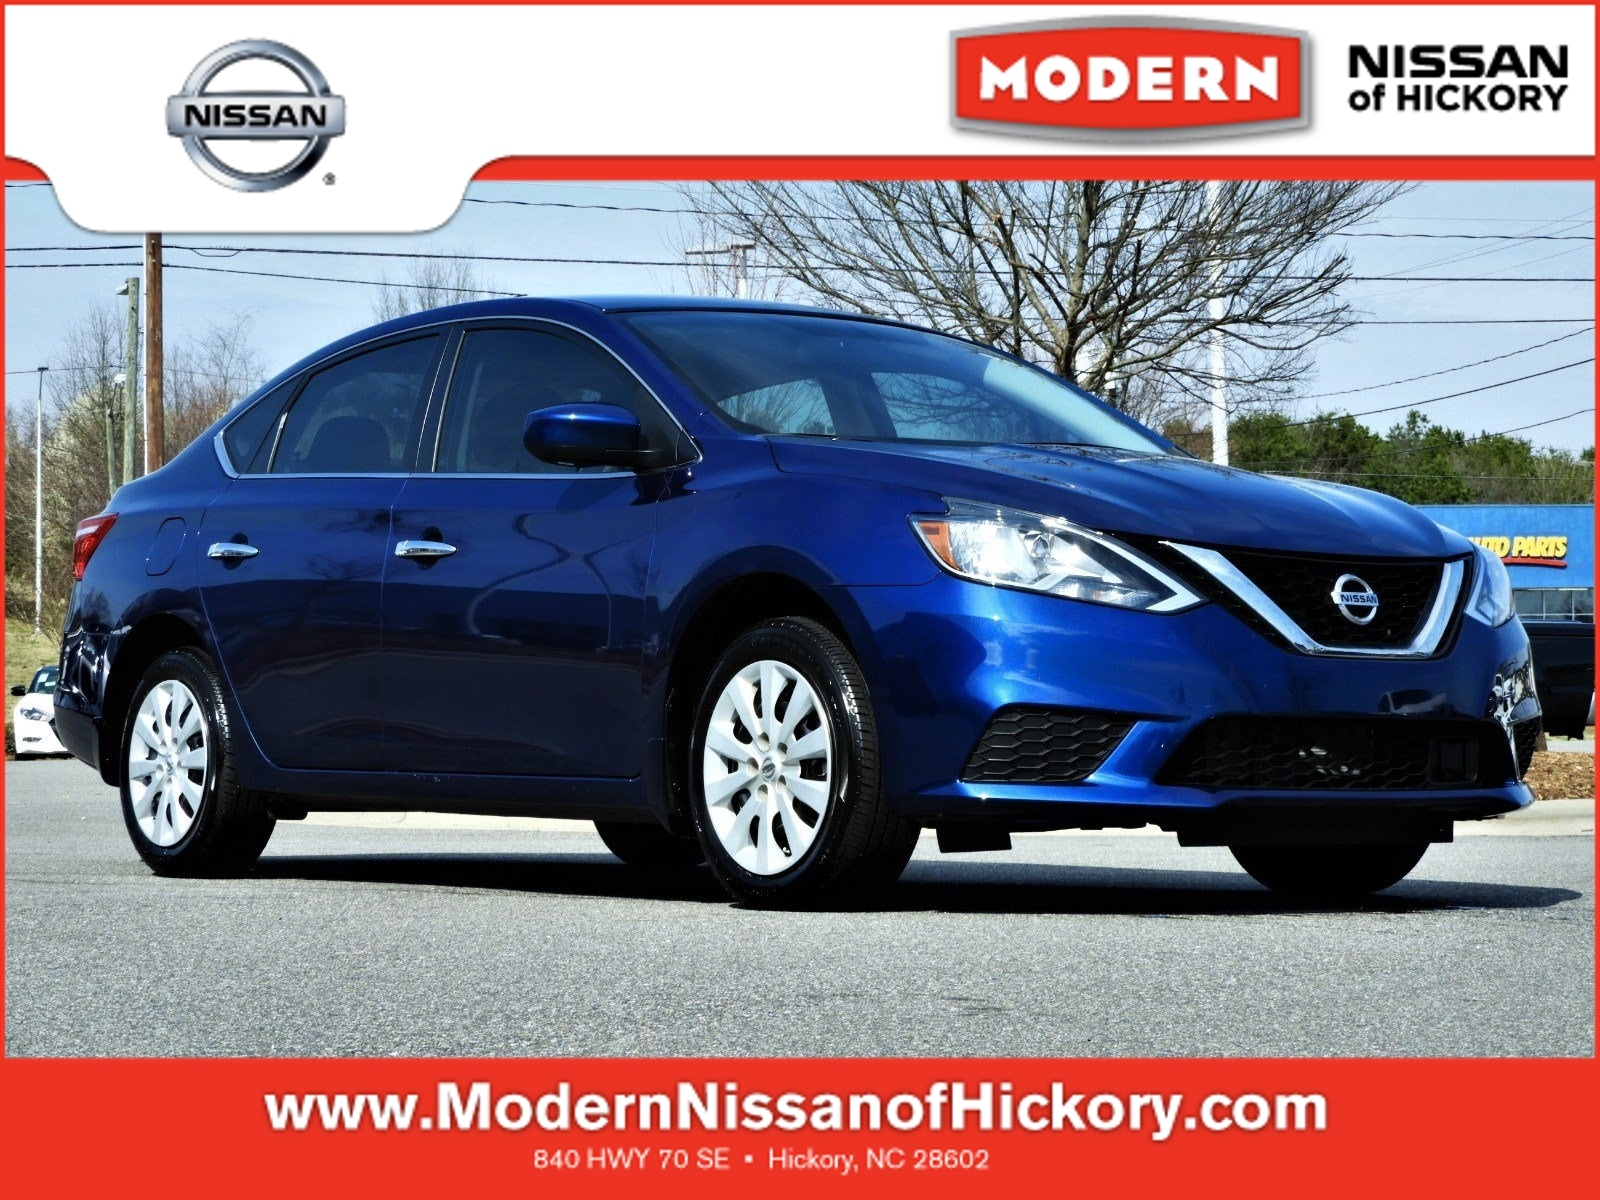 Certified Used 2019 Nissan Sentra S Sedan Hickory, North Carolina